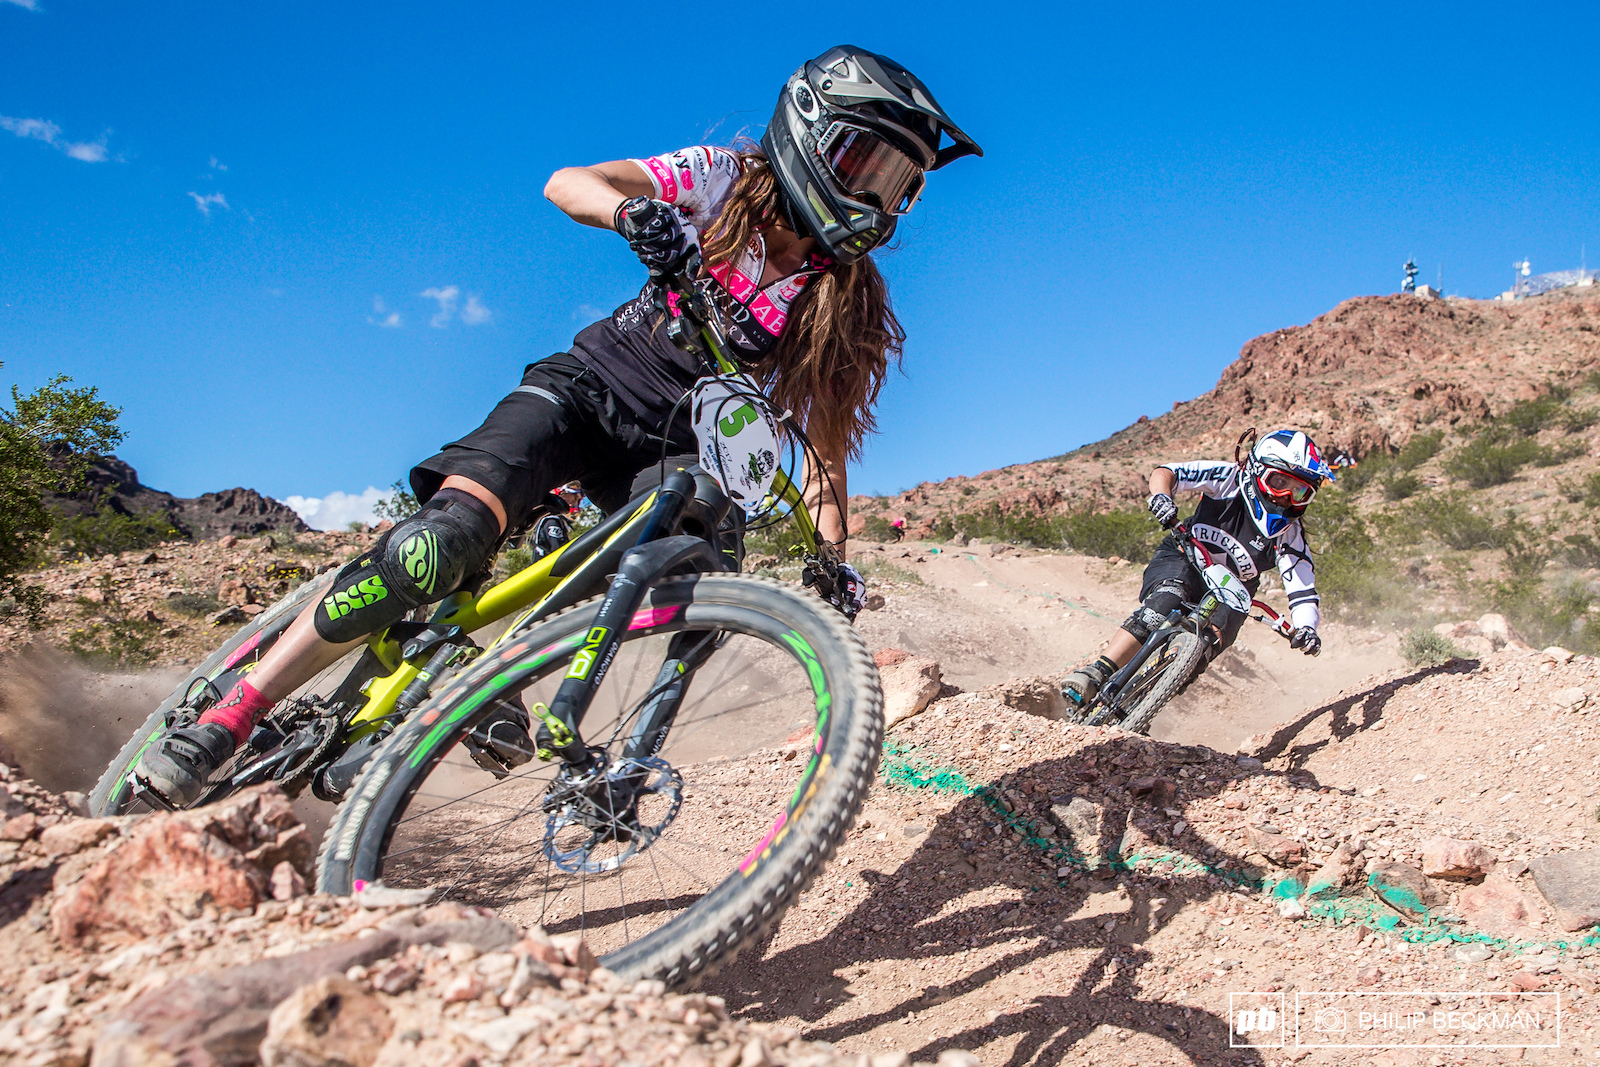 Fitness model Christine Eikmeier aka Johnny Ringo squared off with Samantha Kingshill in the Women s Dual Slalom final. Kingshill prevailed.